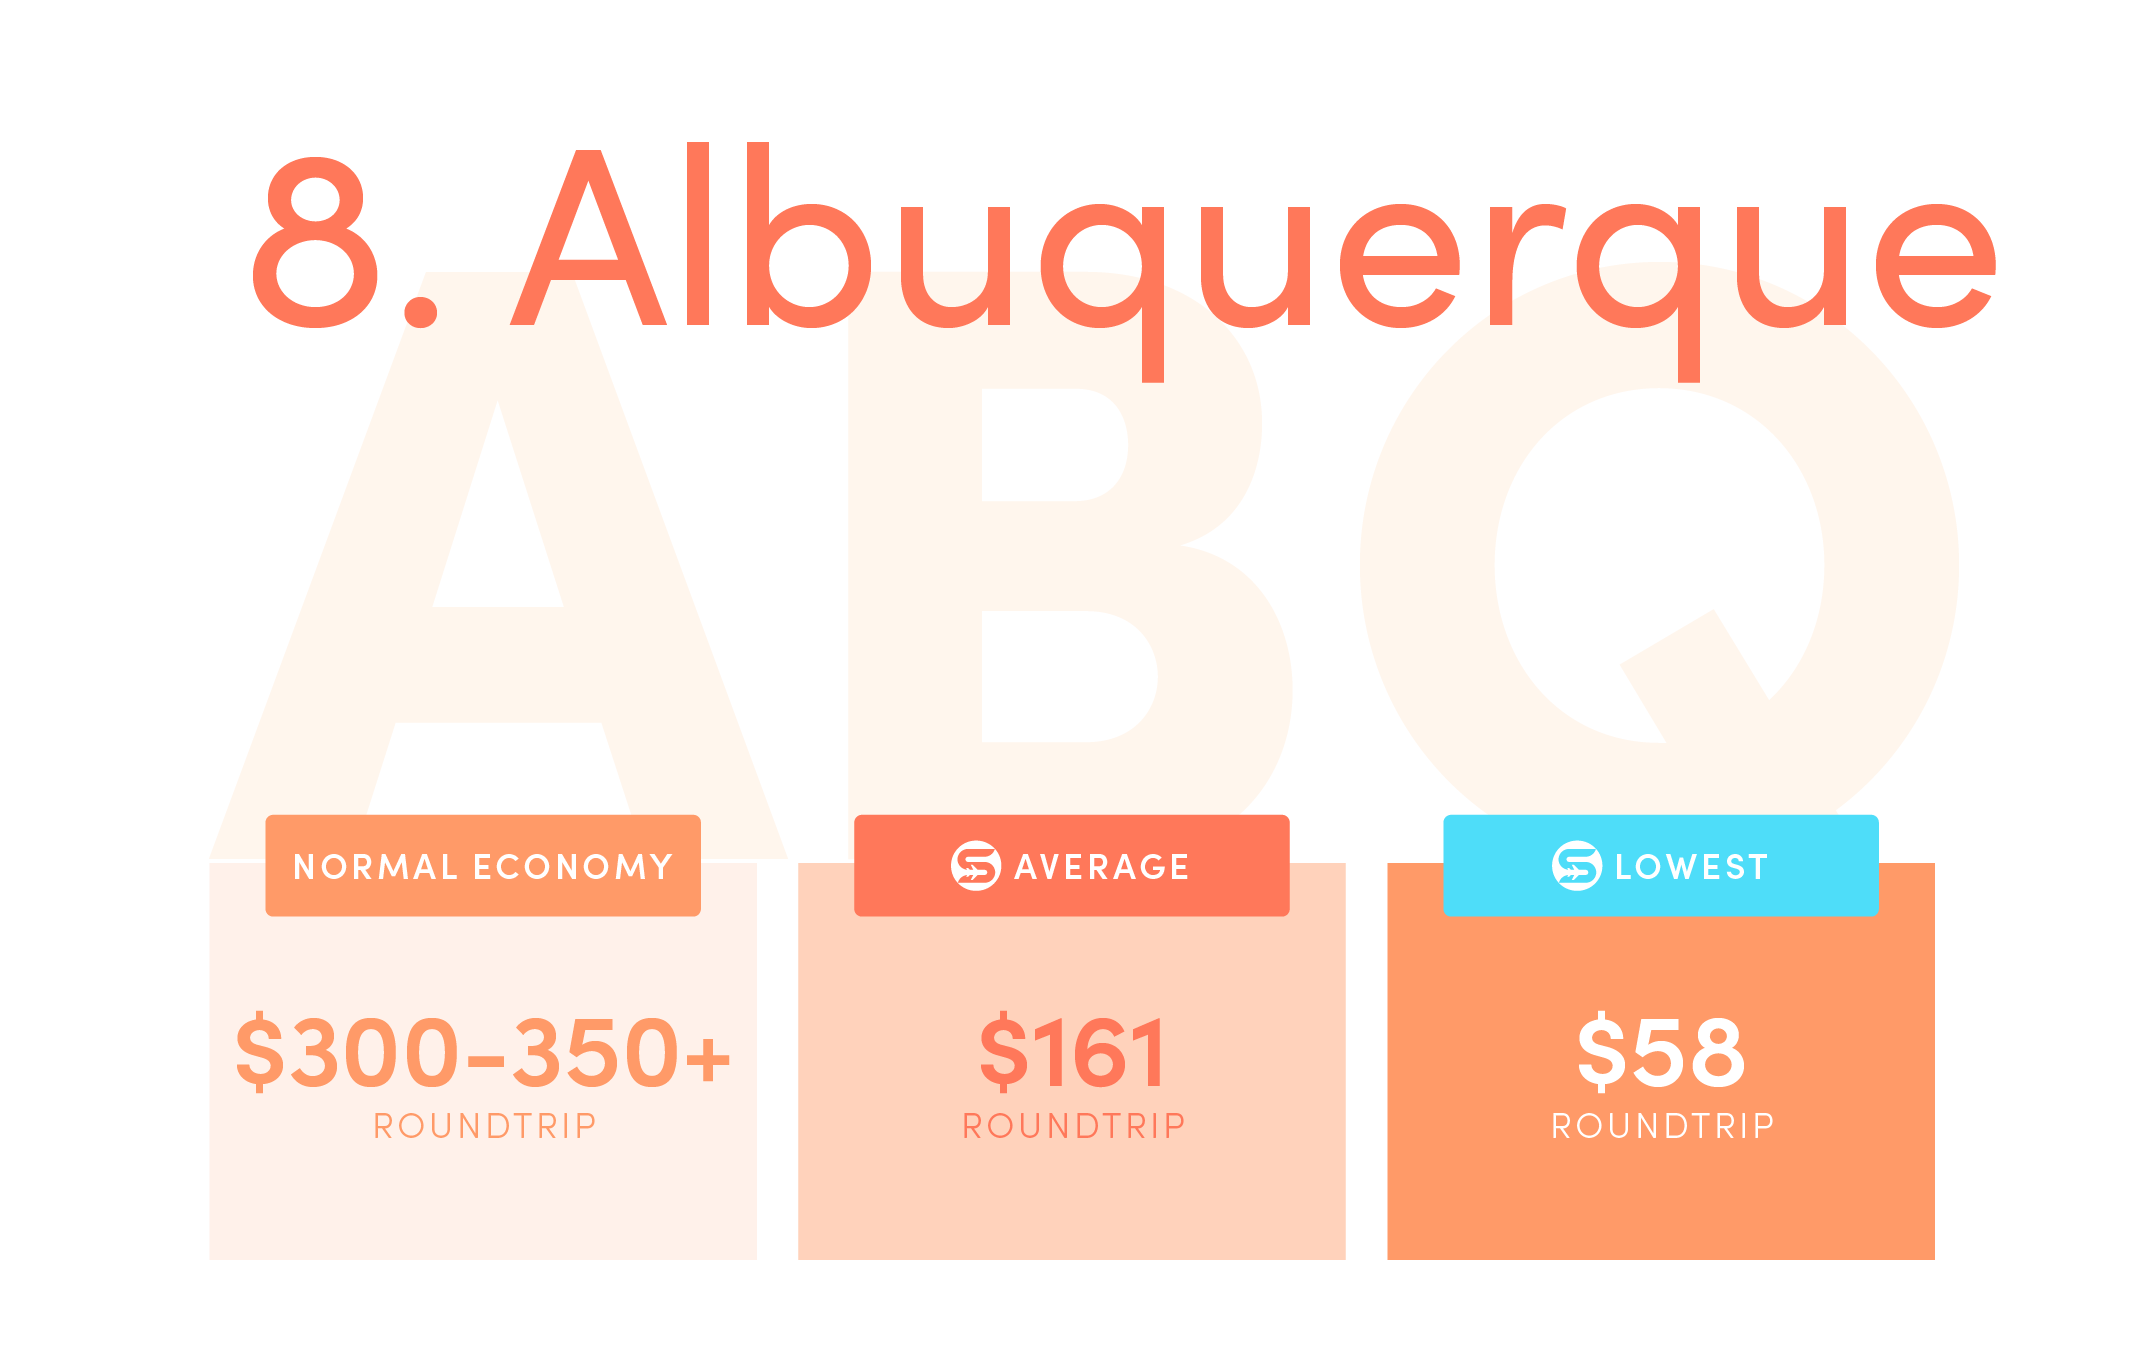 Albuquerque (ABQ).Normal economy price from the US: $300-$350+ roundtrip.Average Scott's Cheap Flights economy price: $161 roundtrip.Lowest Scott's Cheap Flights price in 2021: $58 roundtrip.